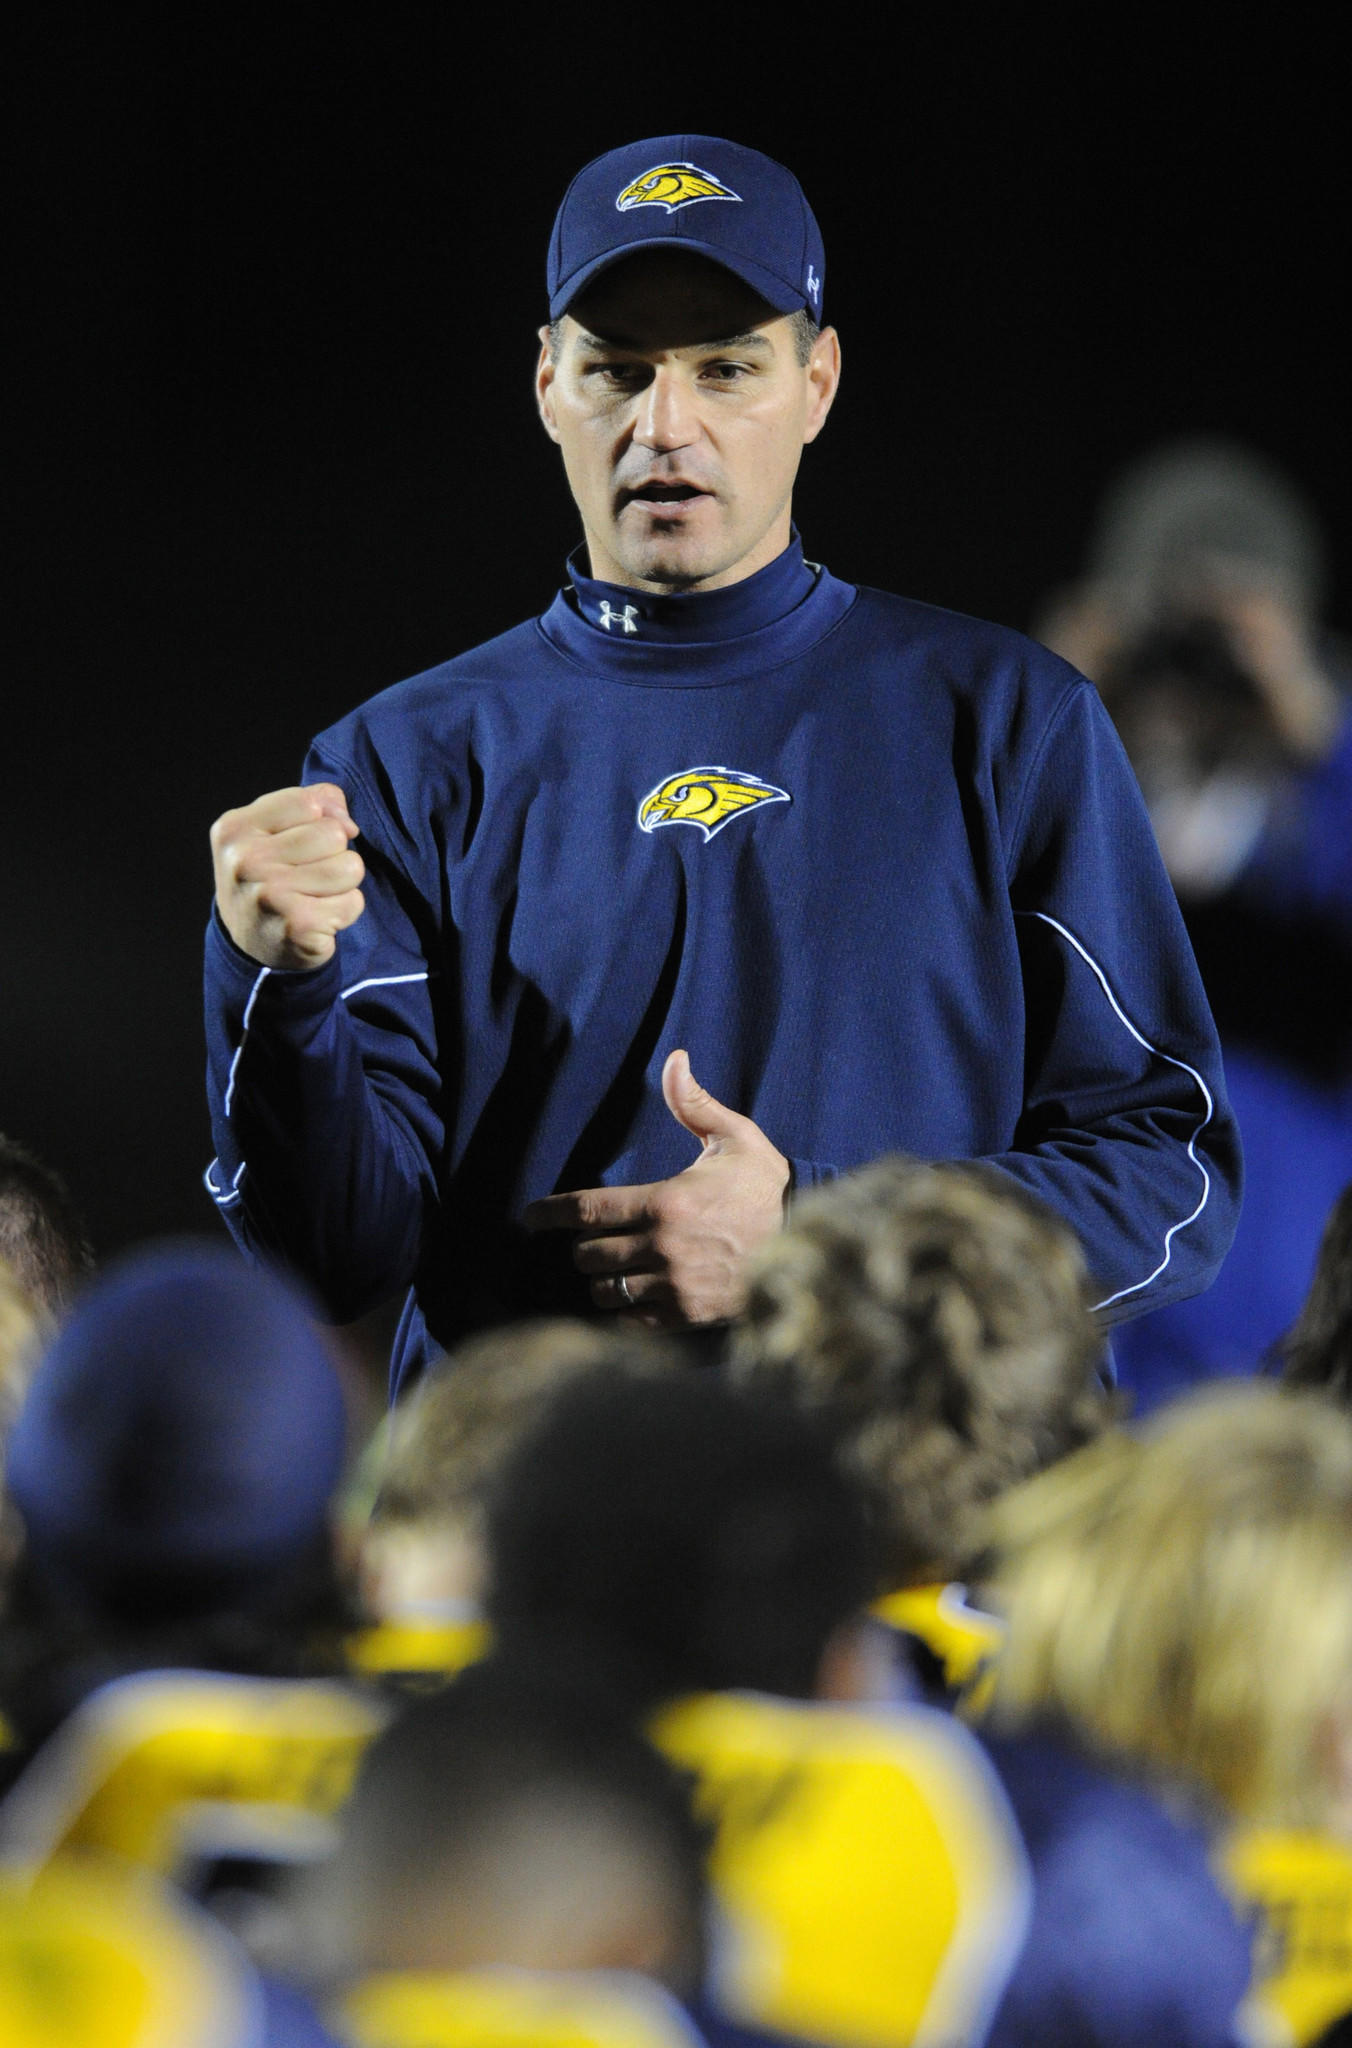 River Hill head coach Brian Van Deusen is coaching Team Maryland in the Big 33 Football Classic.